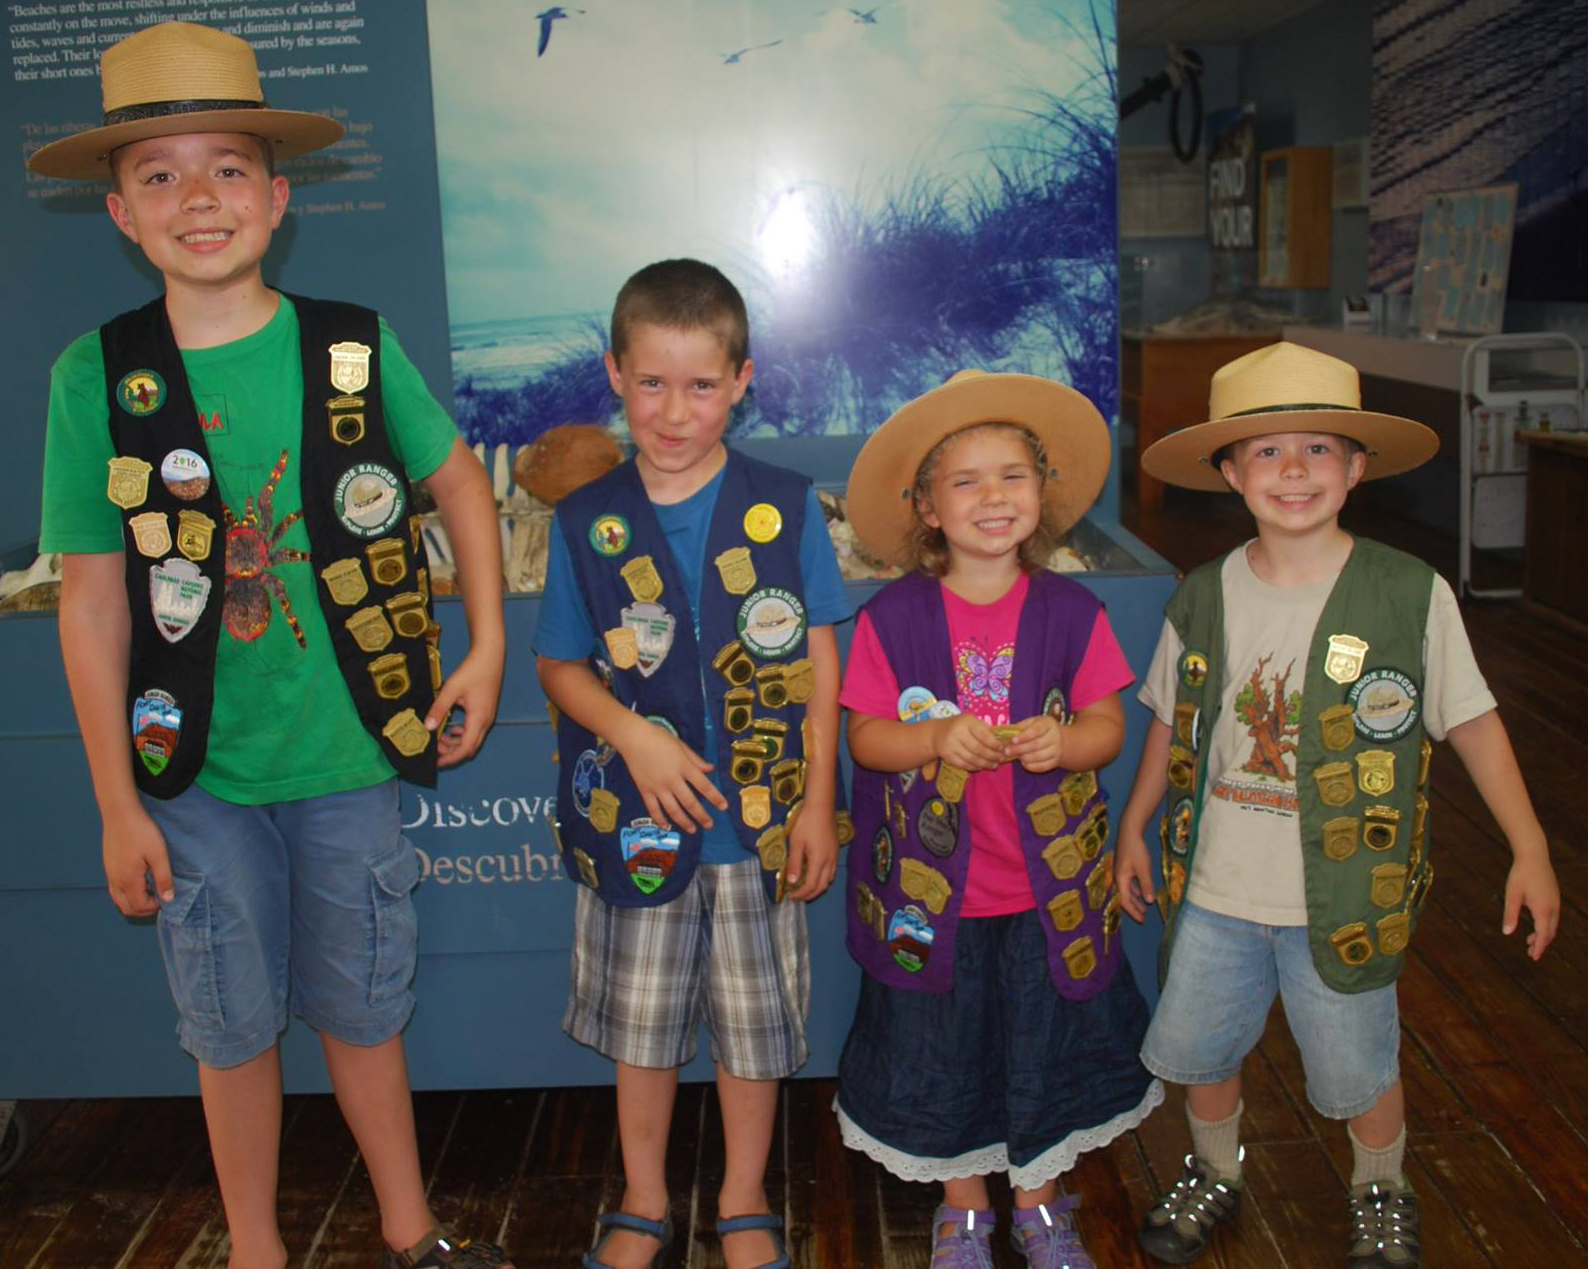 Four recently sworn-in Junior Rangers smile for the camera at Malaquite Visitor Center